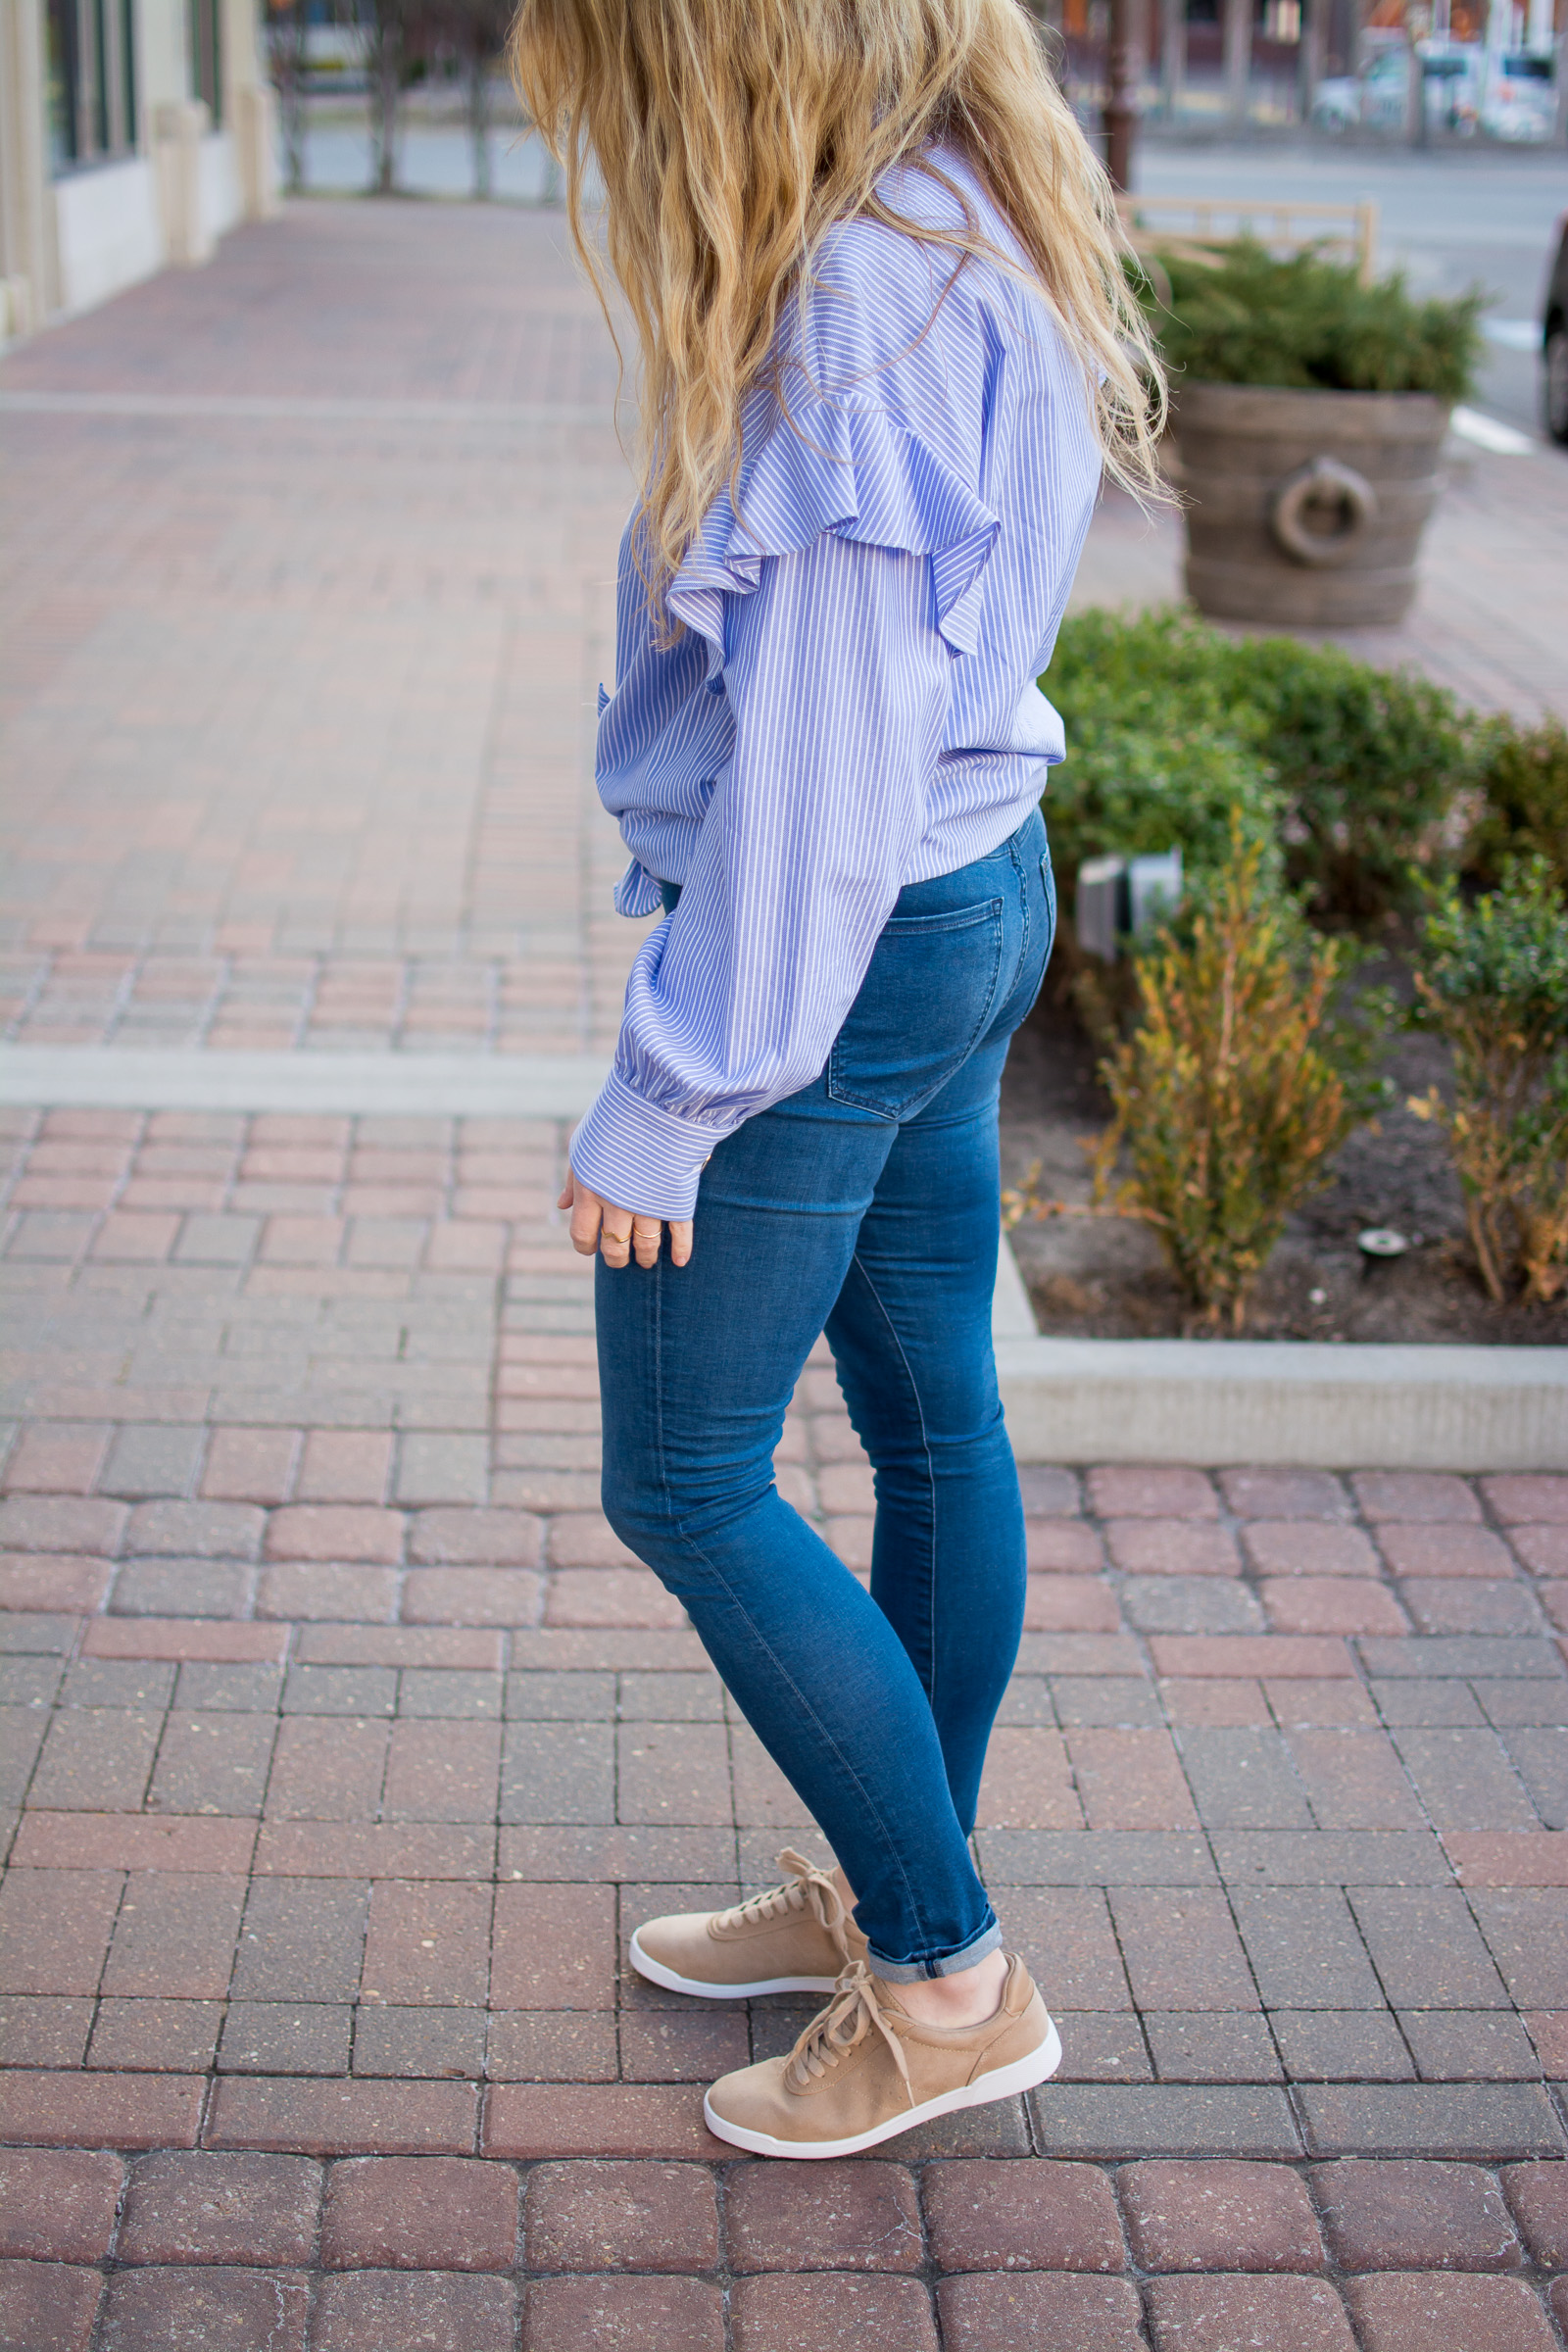 Oversized Blue Striped Shirt + Camel Sneakers. | Ashley from Le Stylo Rouge